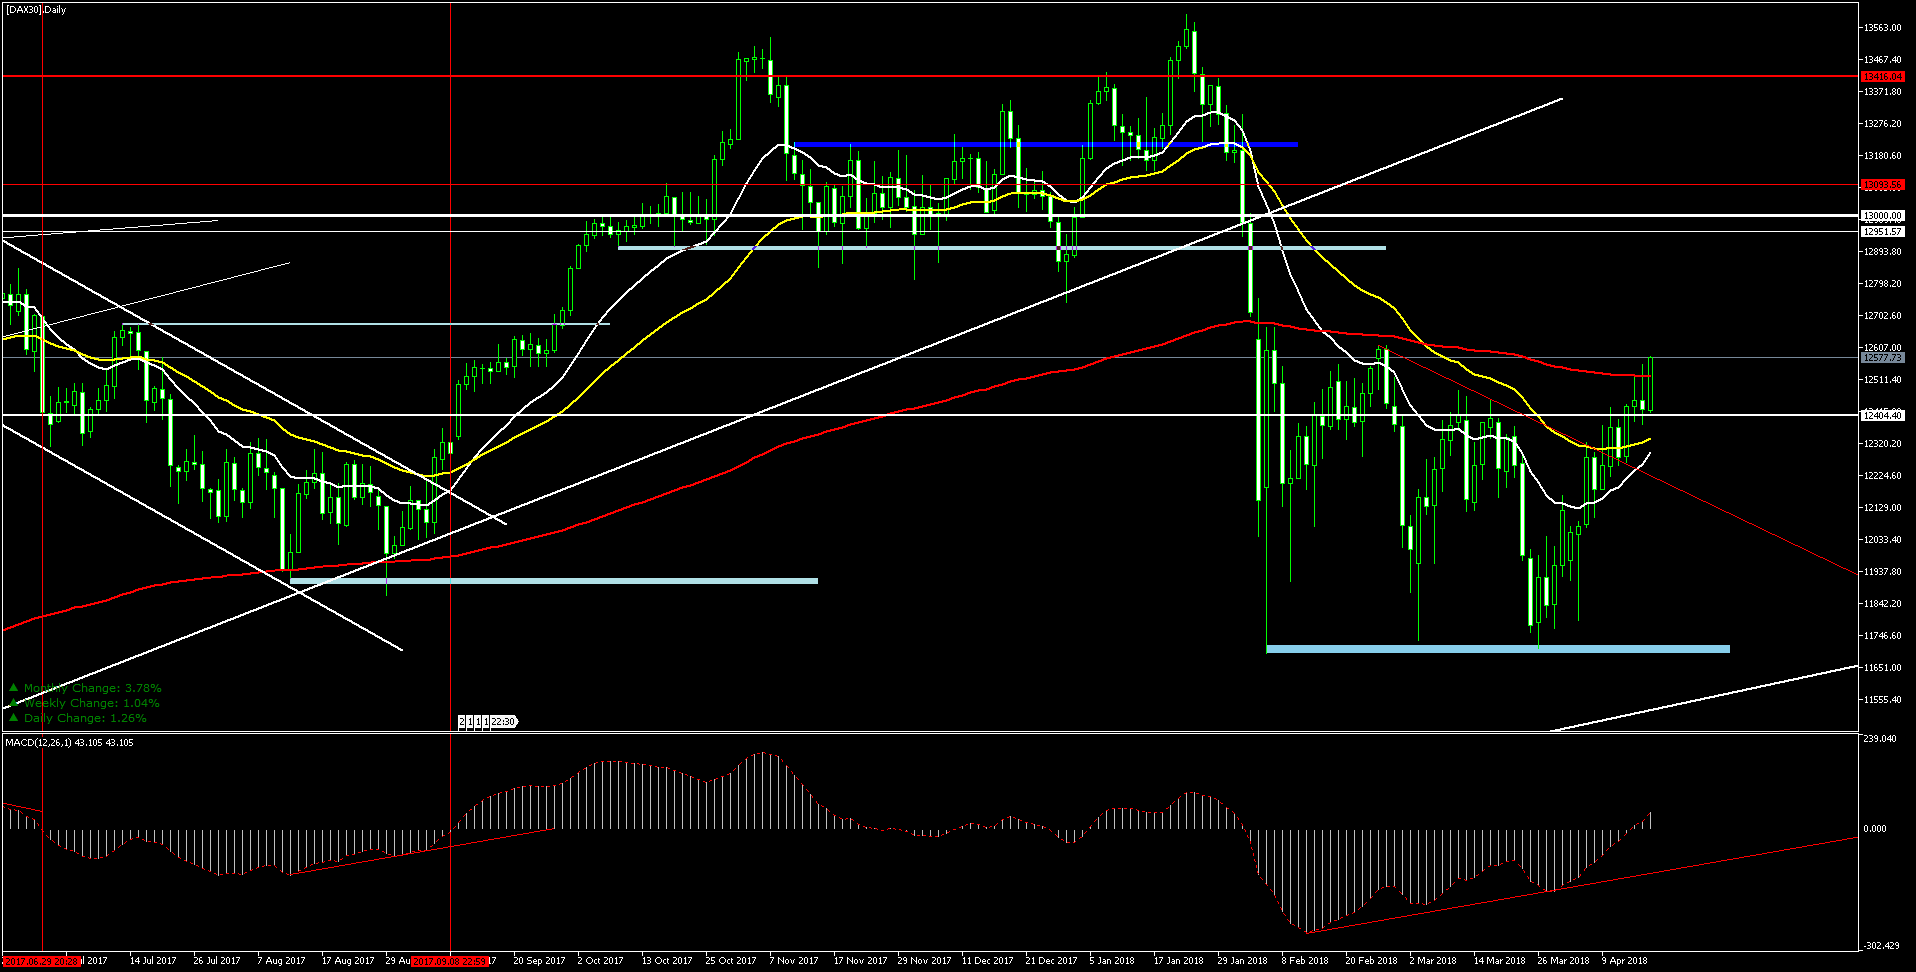 CFD DAX30